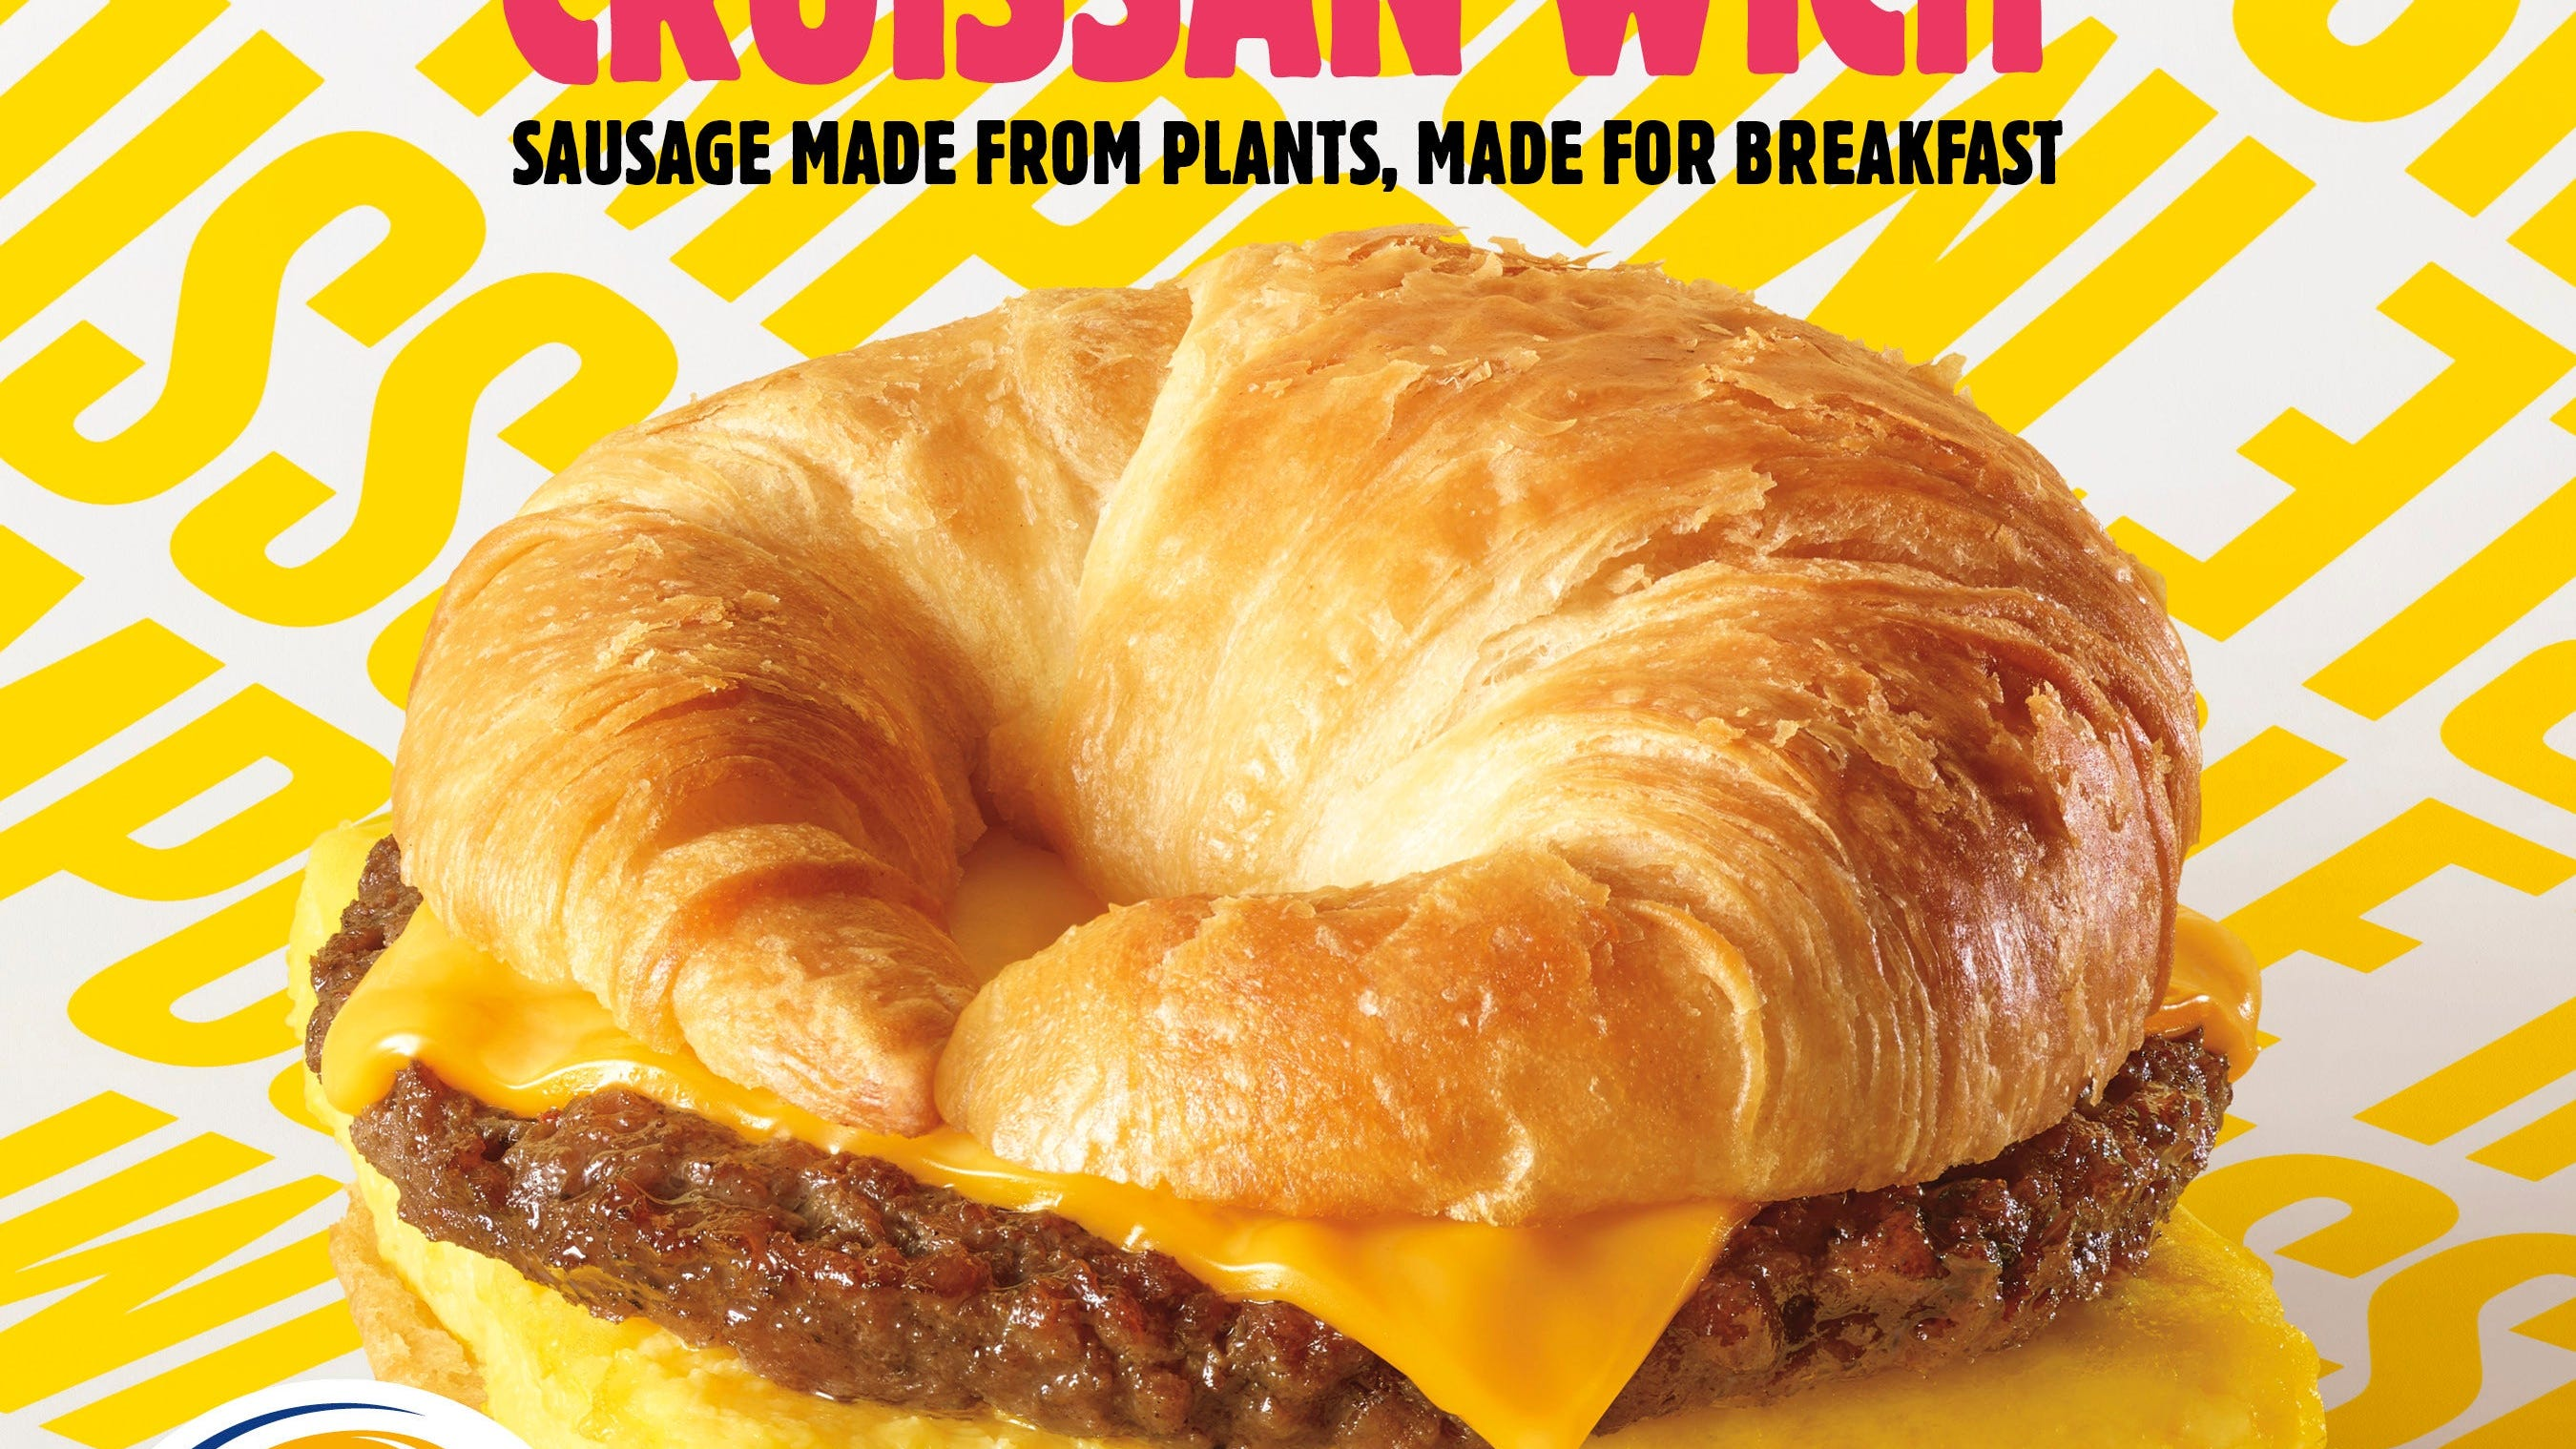 Burger King Goes Plant Based For Breakfast With New Croissan Wich